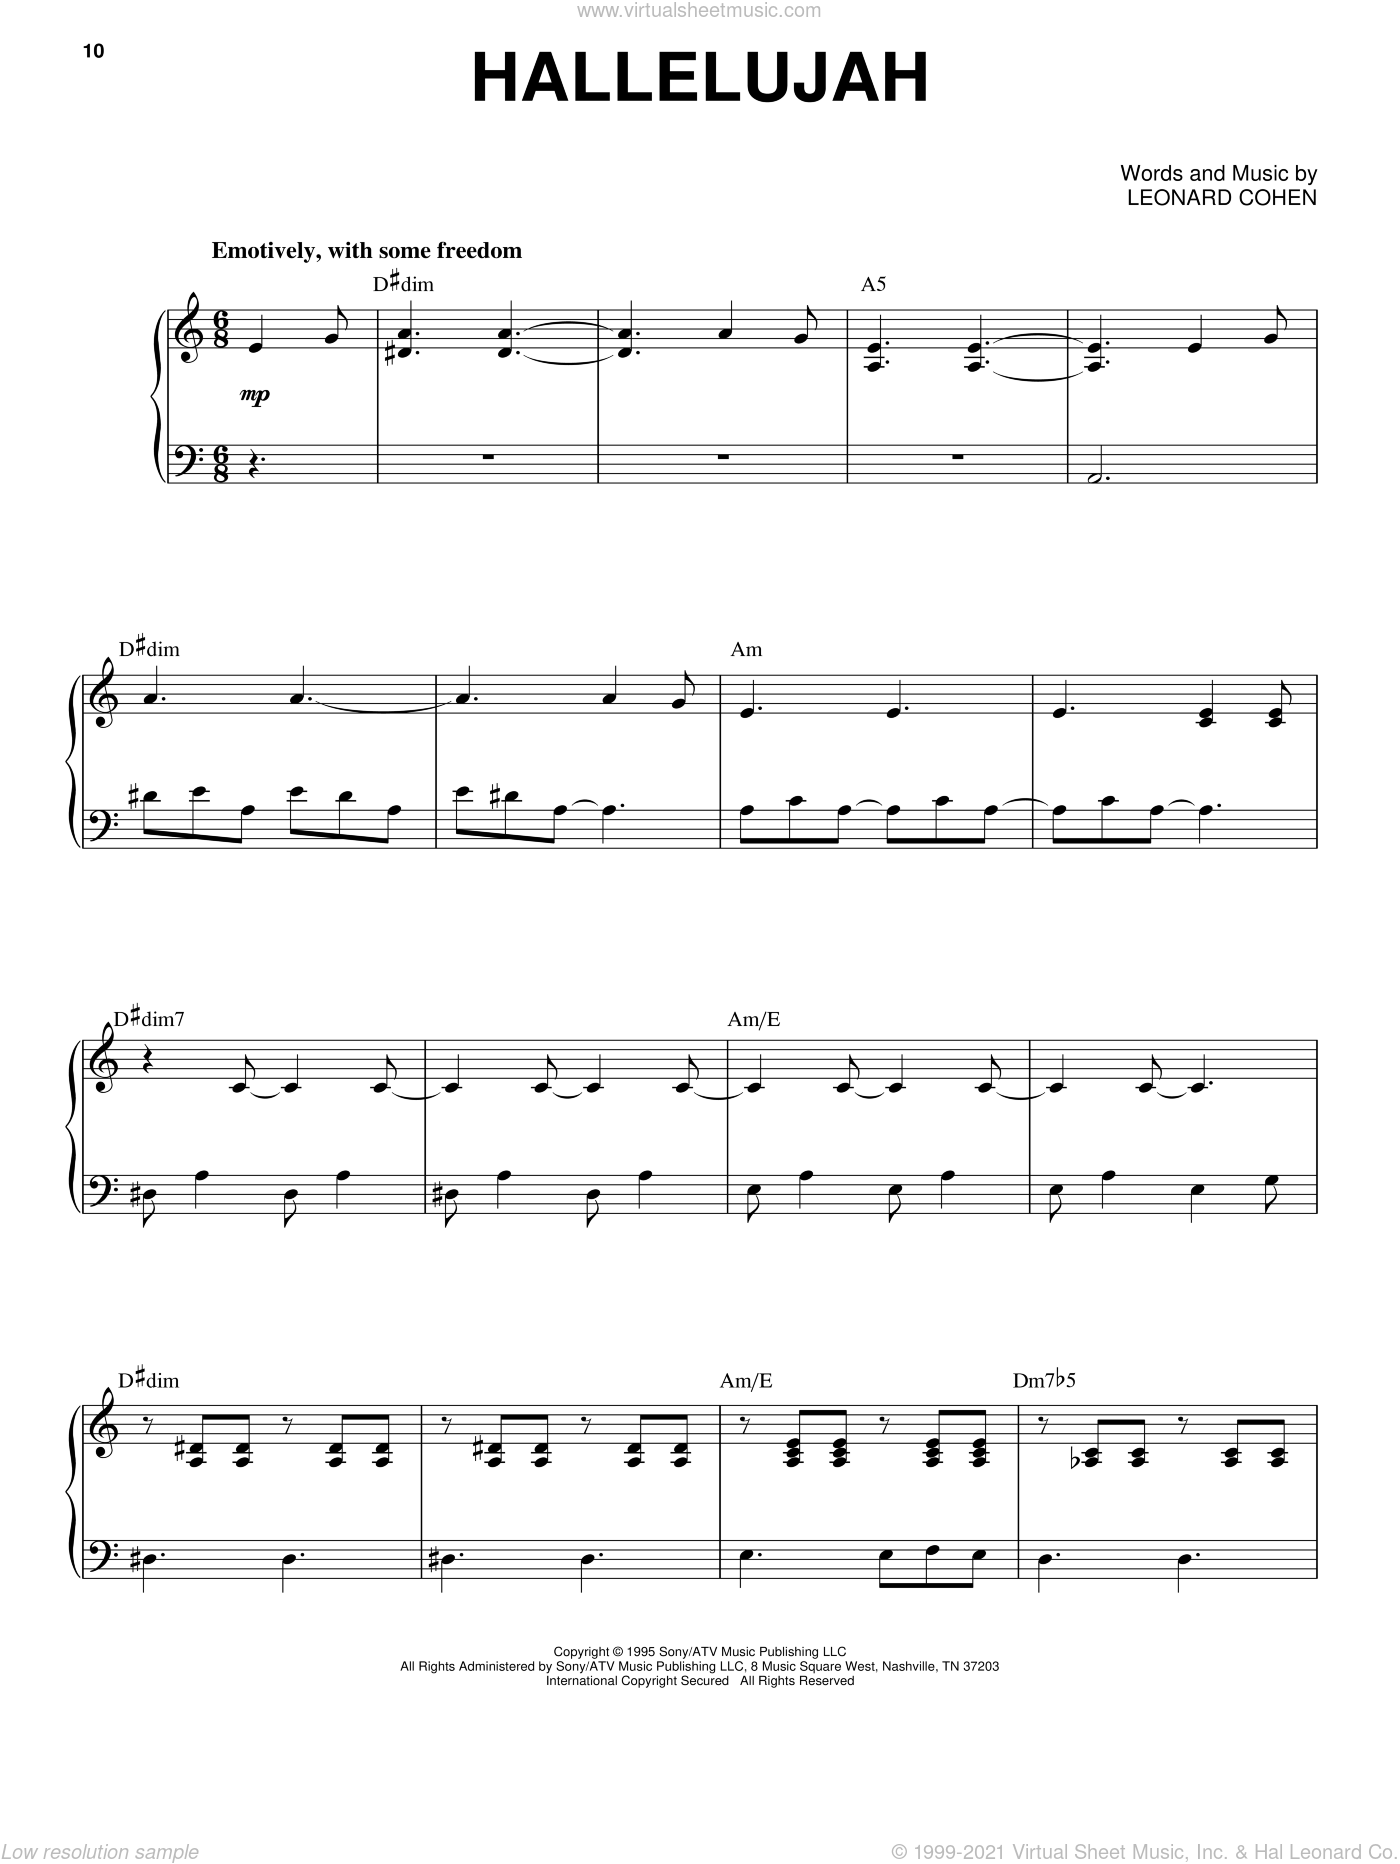 Hallelujah sheet music for voice and piano by Leonard Cohen